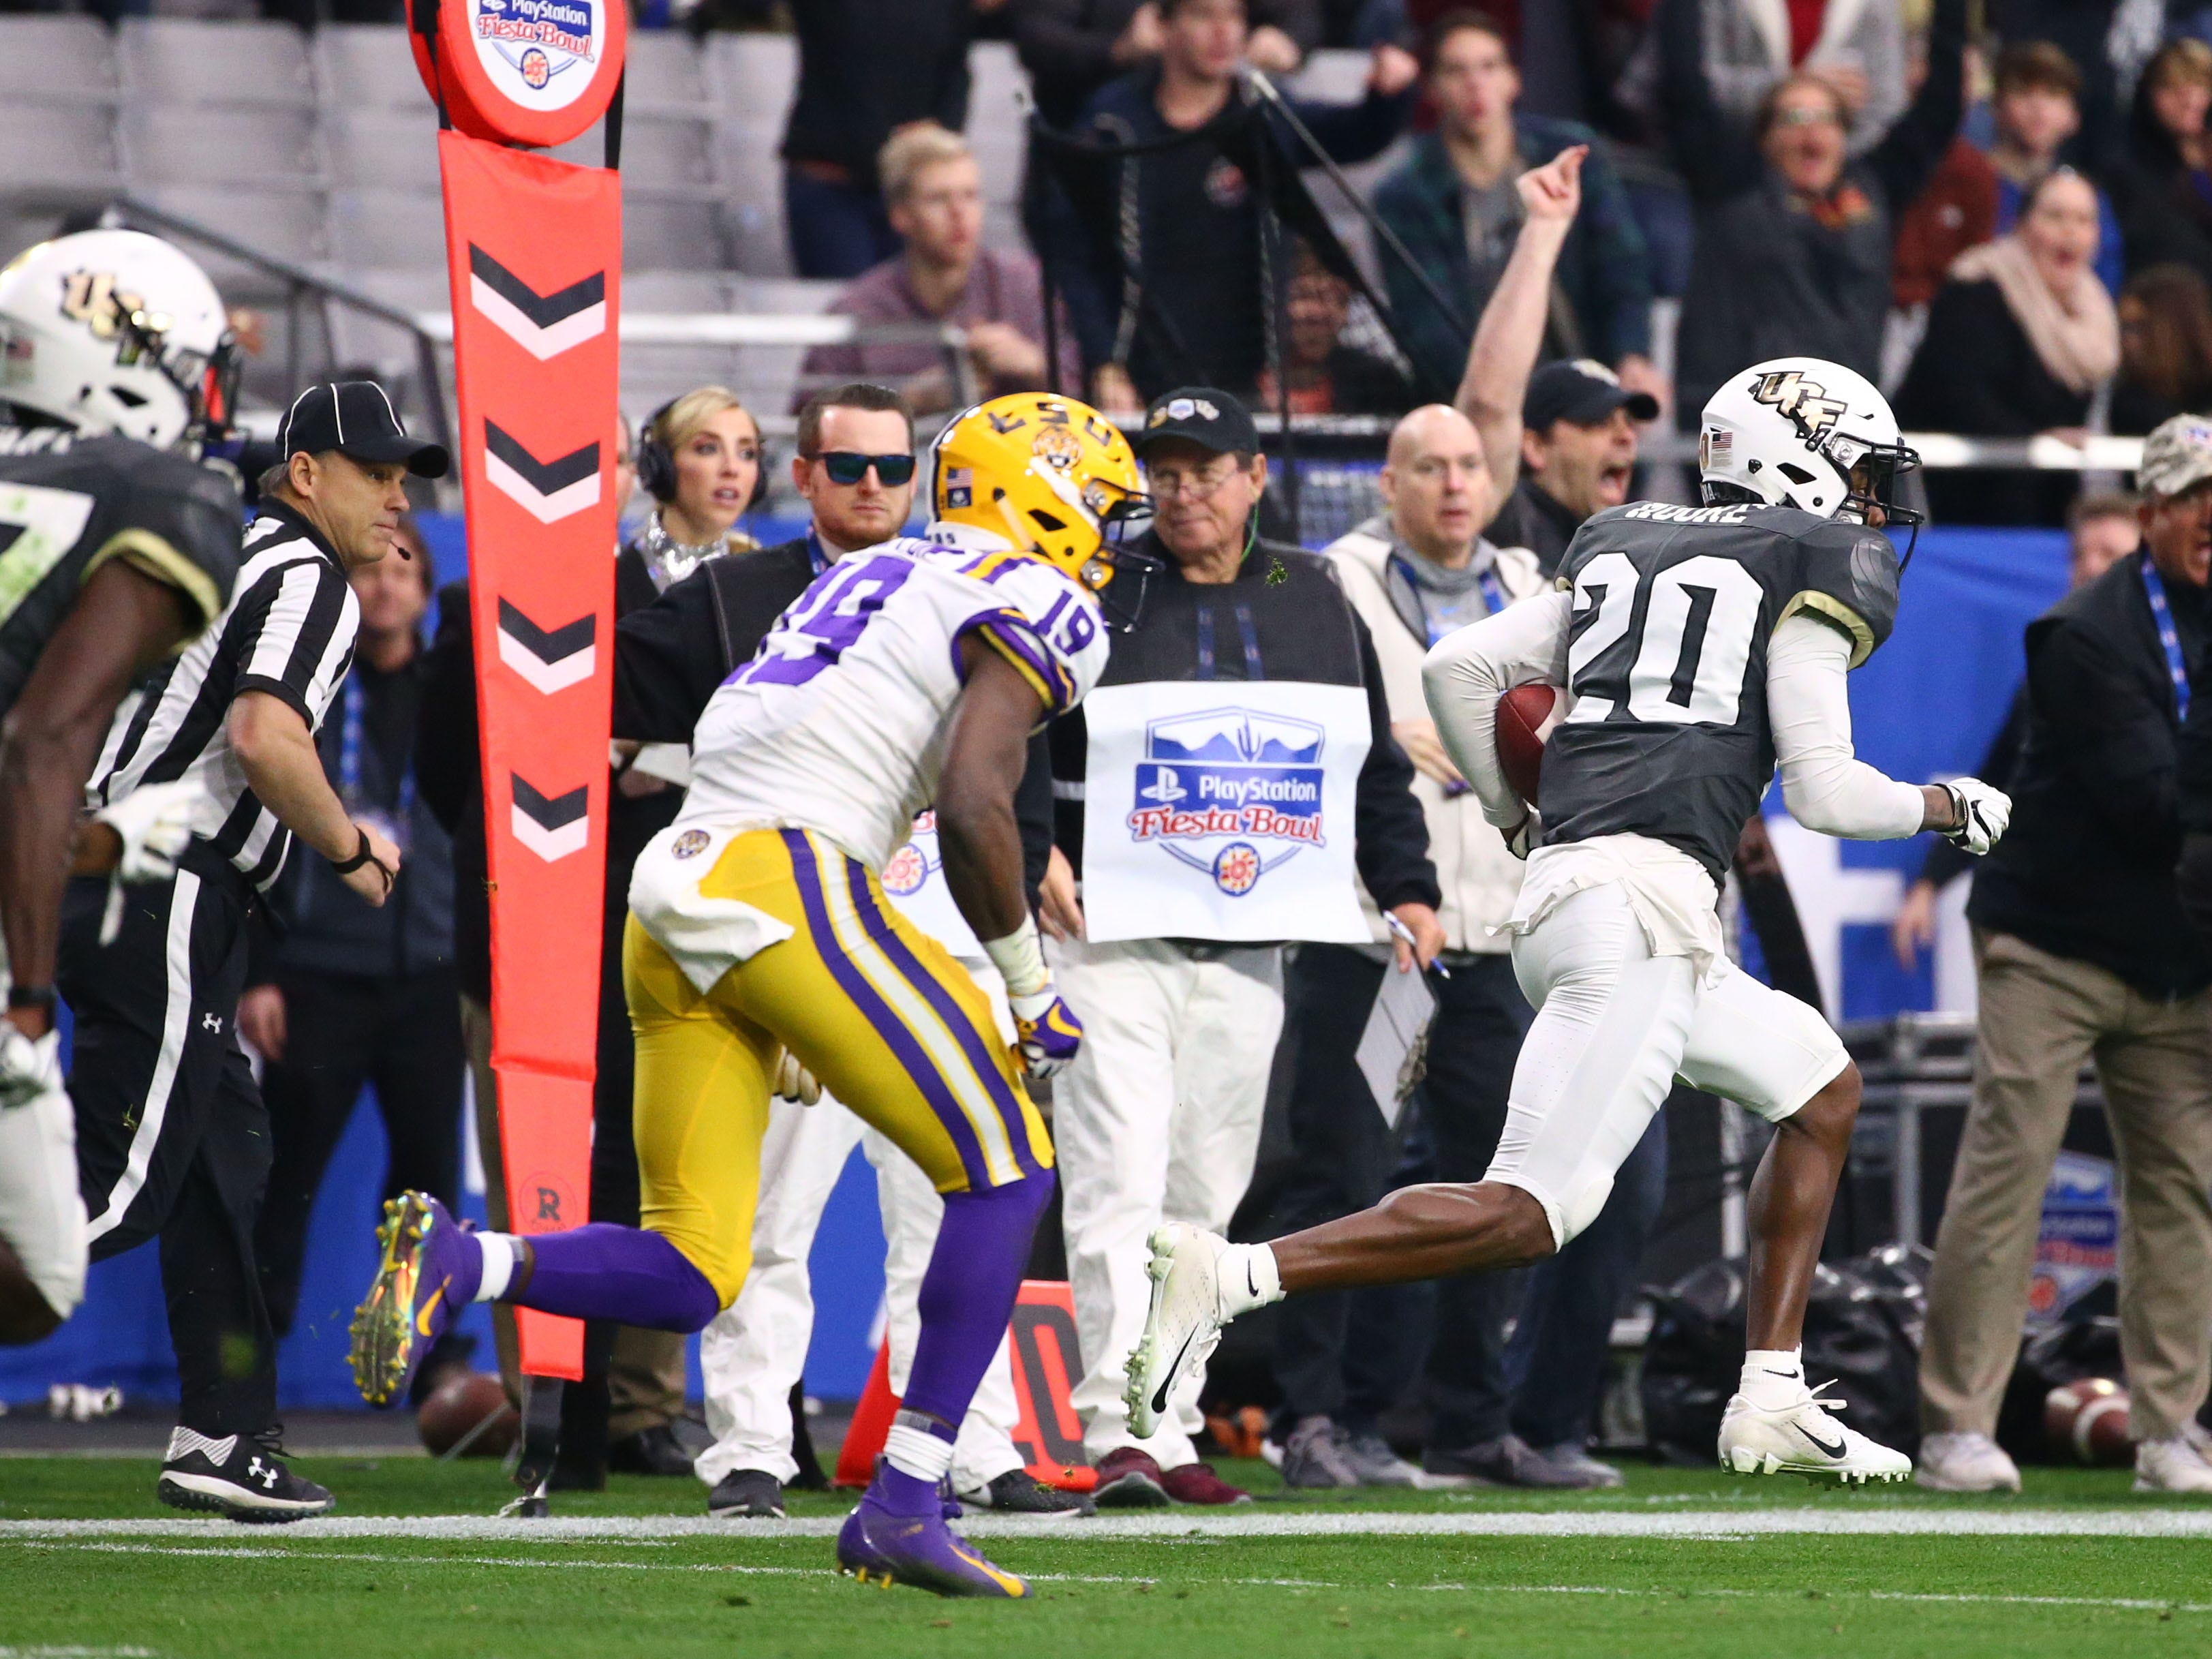 UCF Knights defensive back Brandon Moore (20) scores a touchdown on a interception against the LSU Tigers in the first half at the Fiesta Bowl on Jan. 1 at State Farm Stadium.